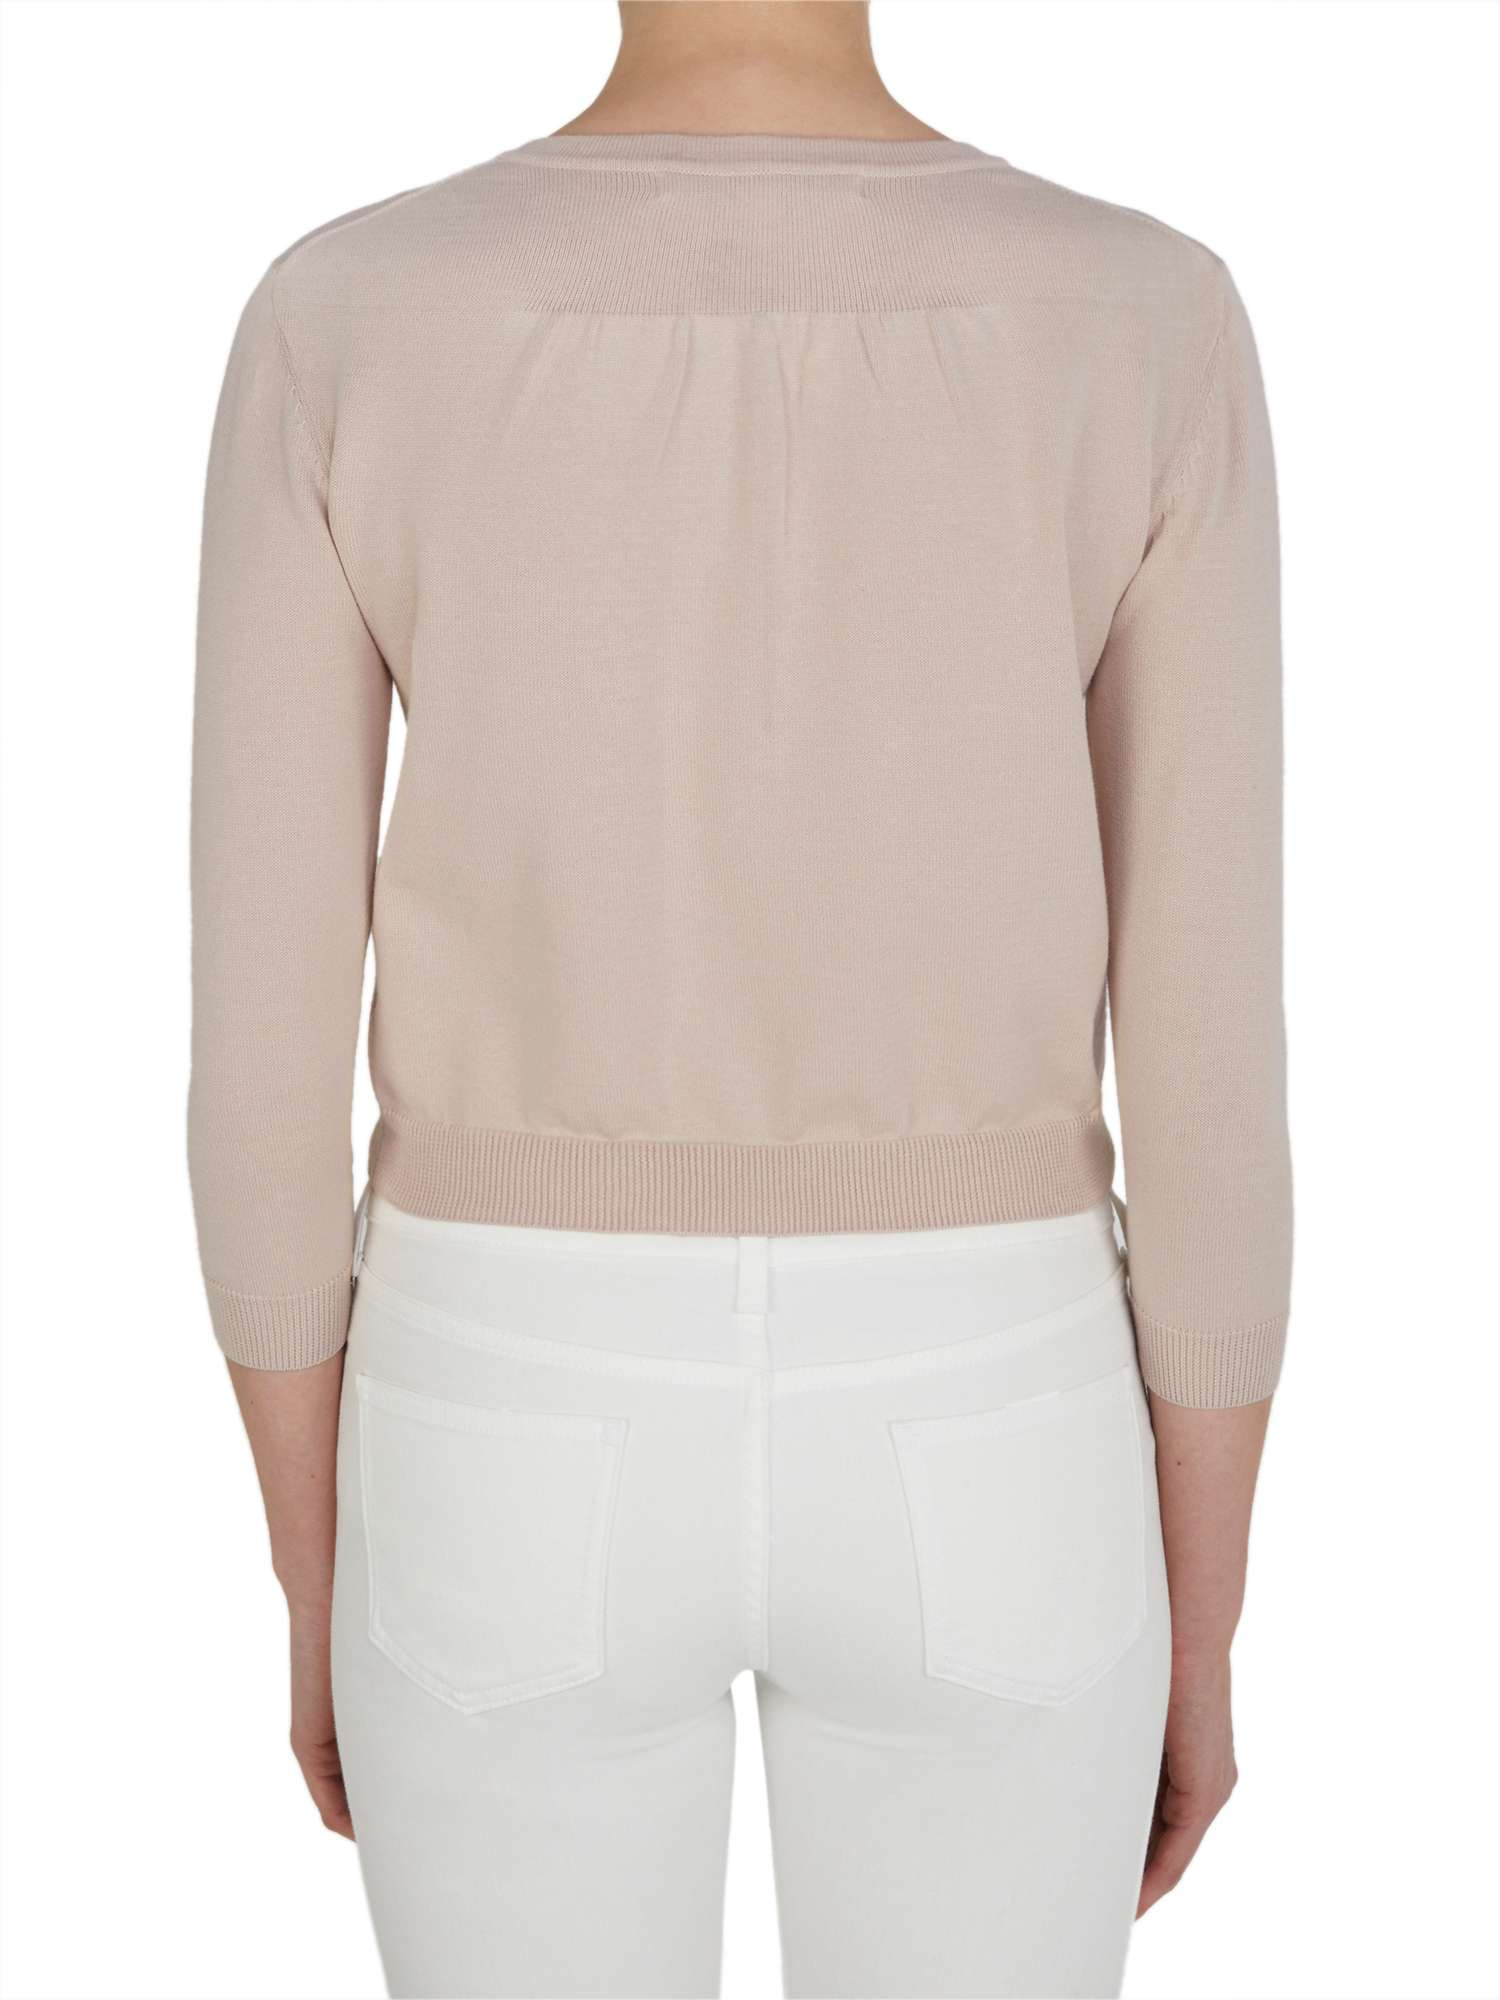 Nougat London Tansy Cropped Cropped Cardigan Tansy Nougat London Nougat Cardigan Tansy London Nougat Cardigan Cropped WpaqxHnAw